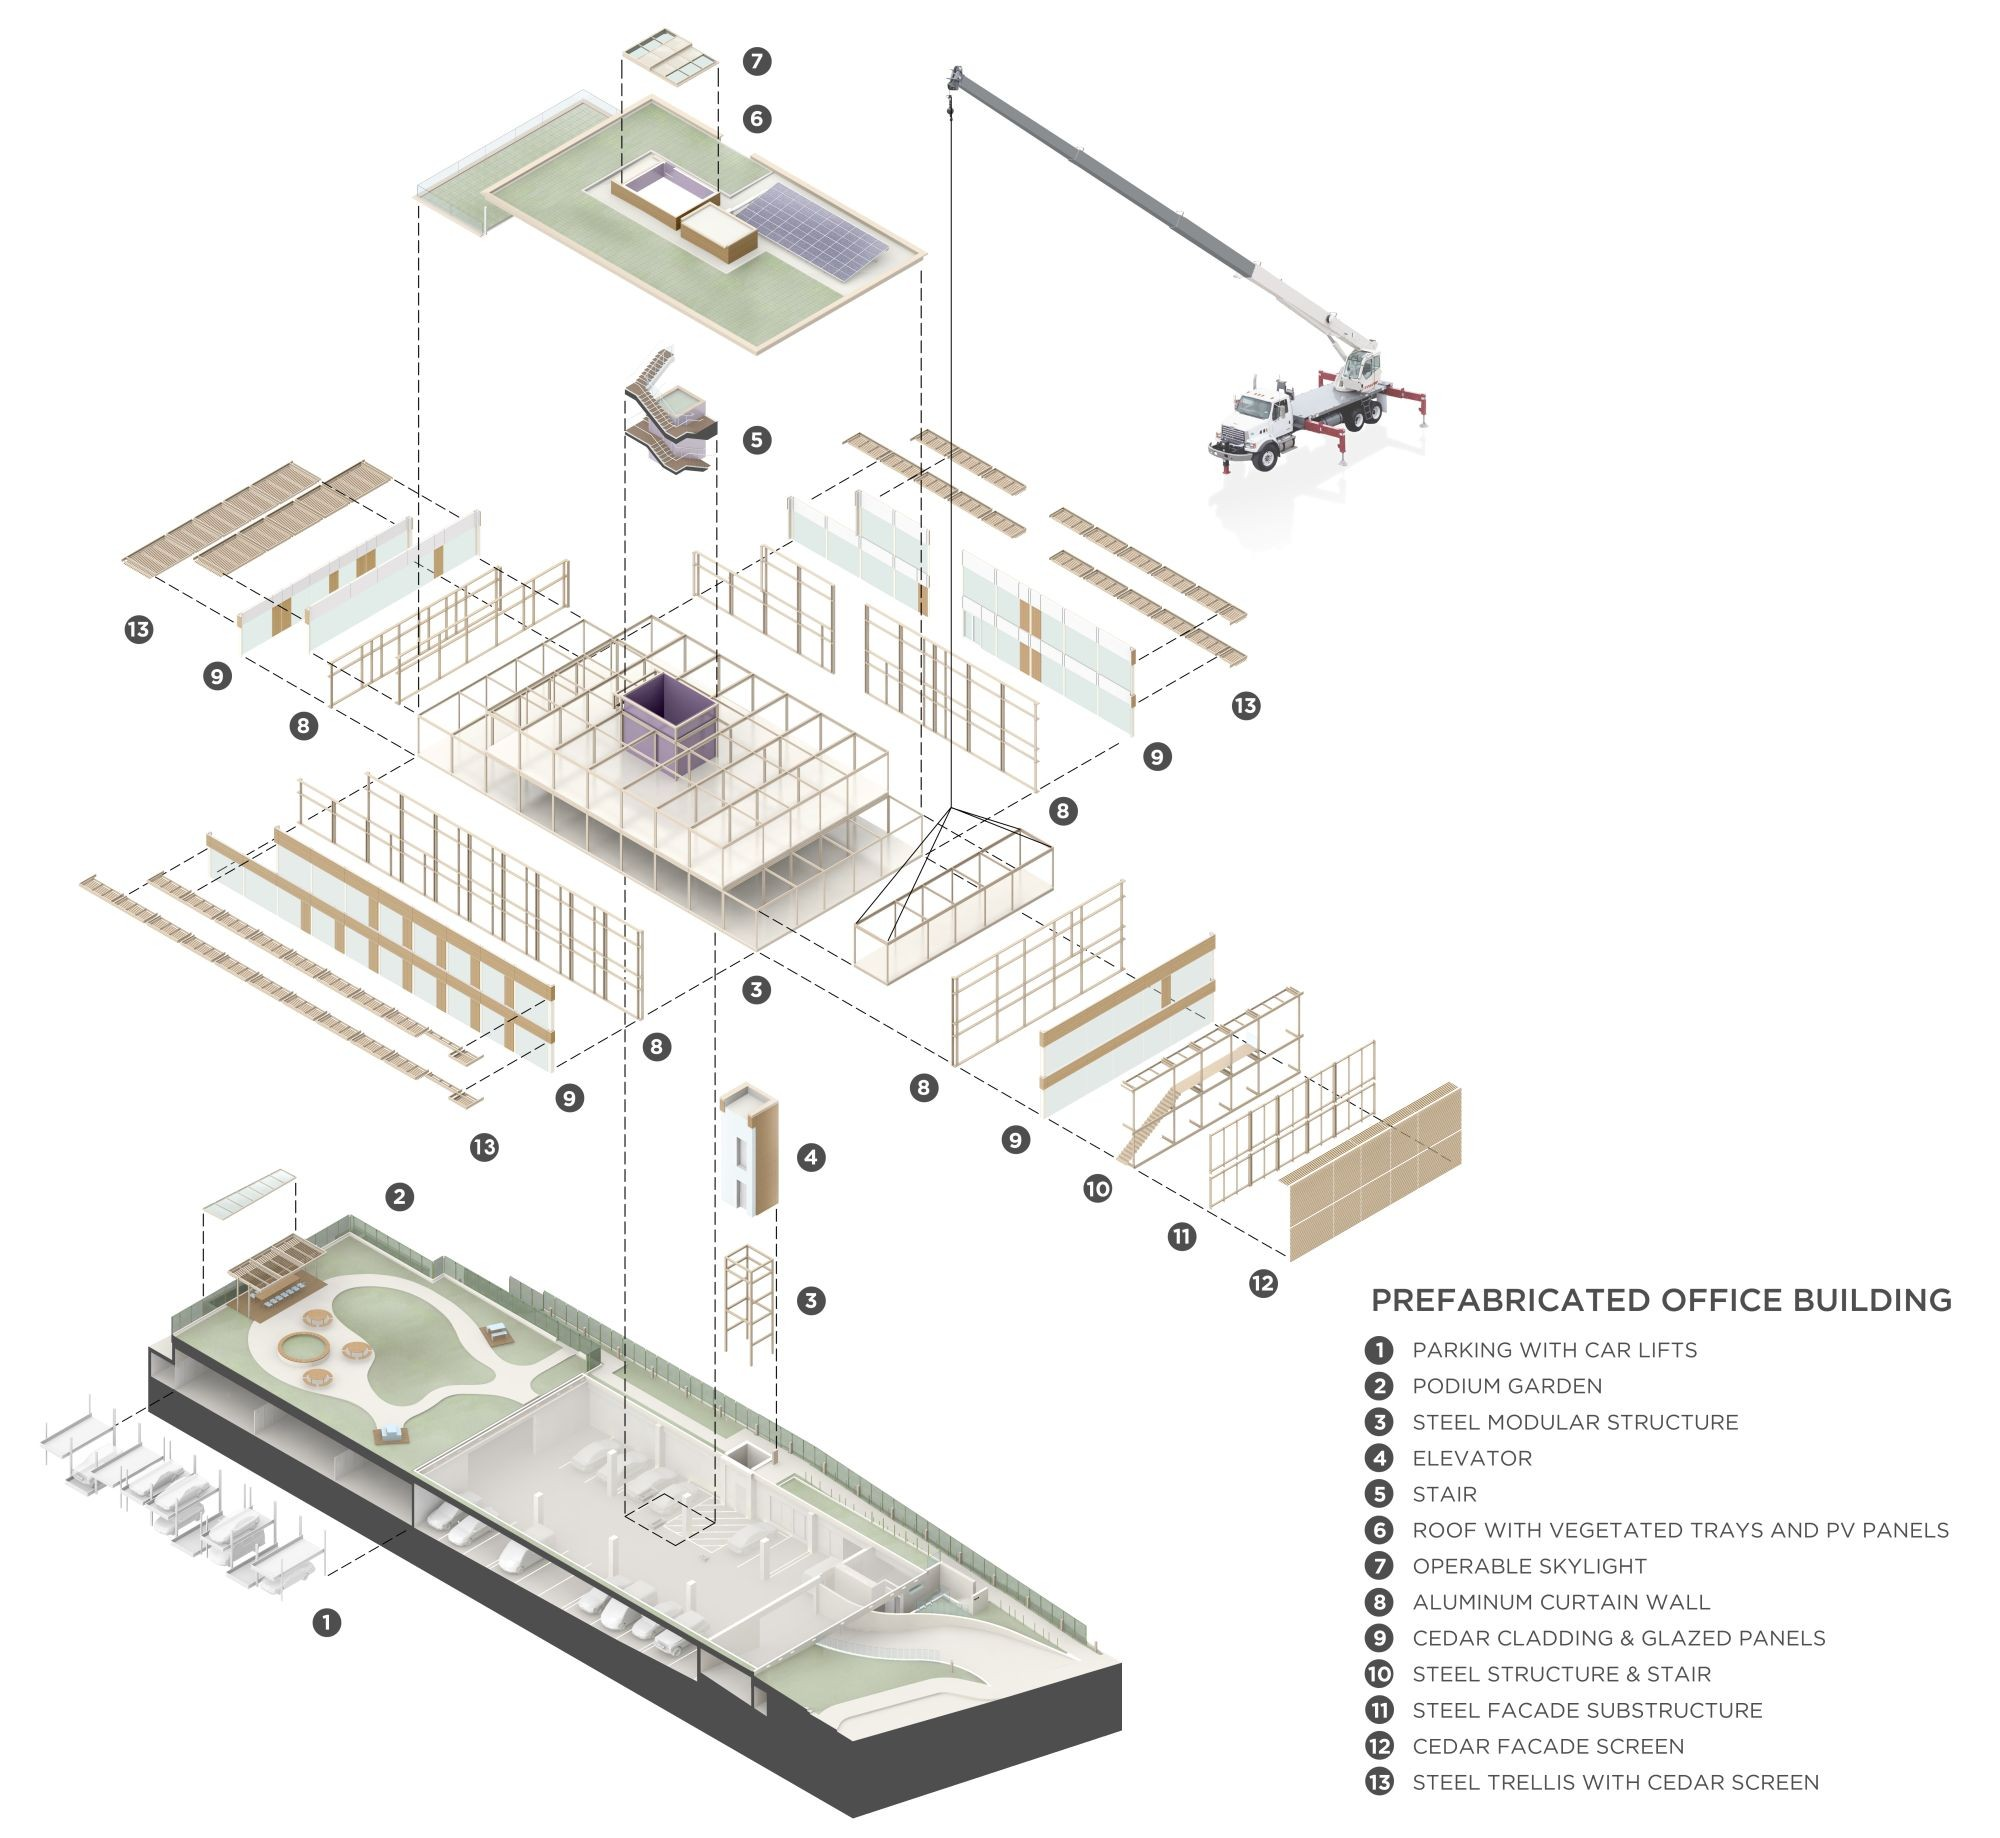 exploded axon diagram simplicity prestige wiring gallery of venture capital office headquarters paul